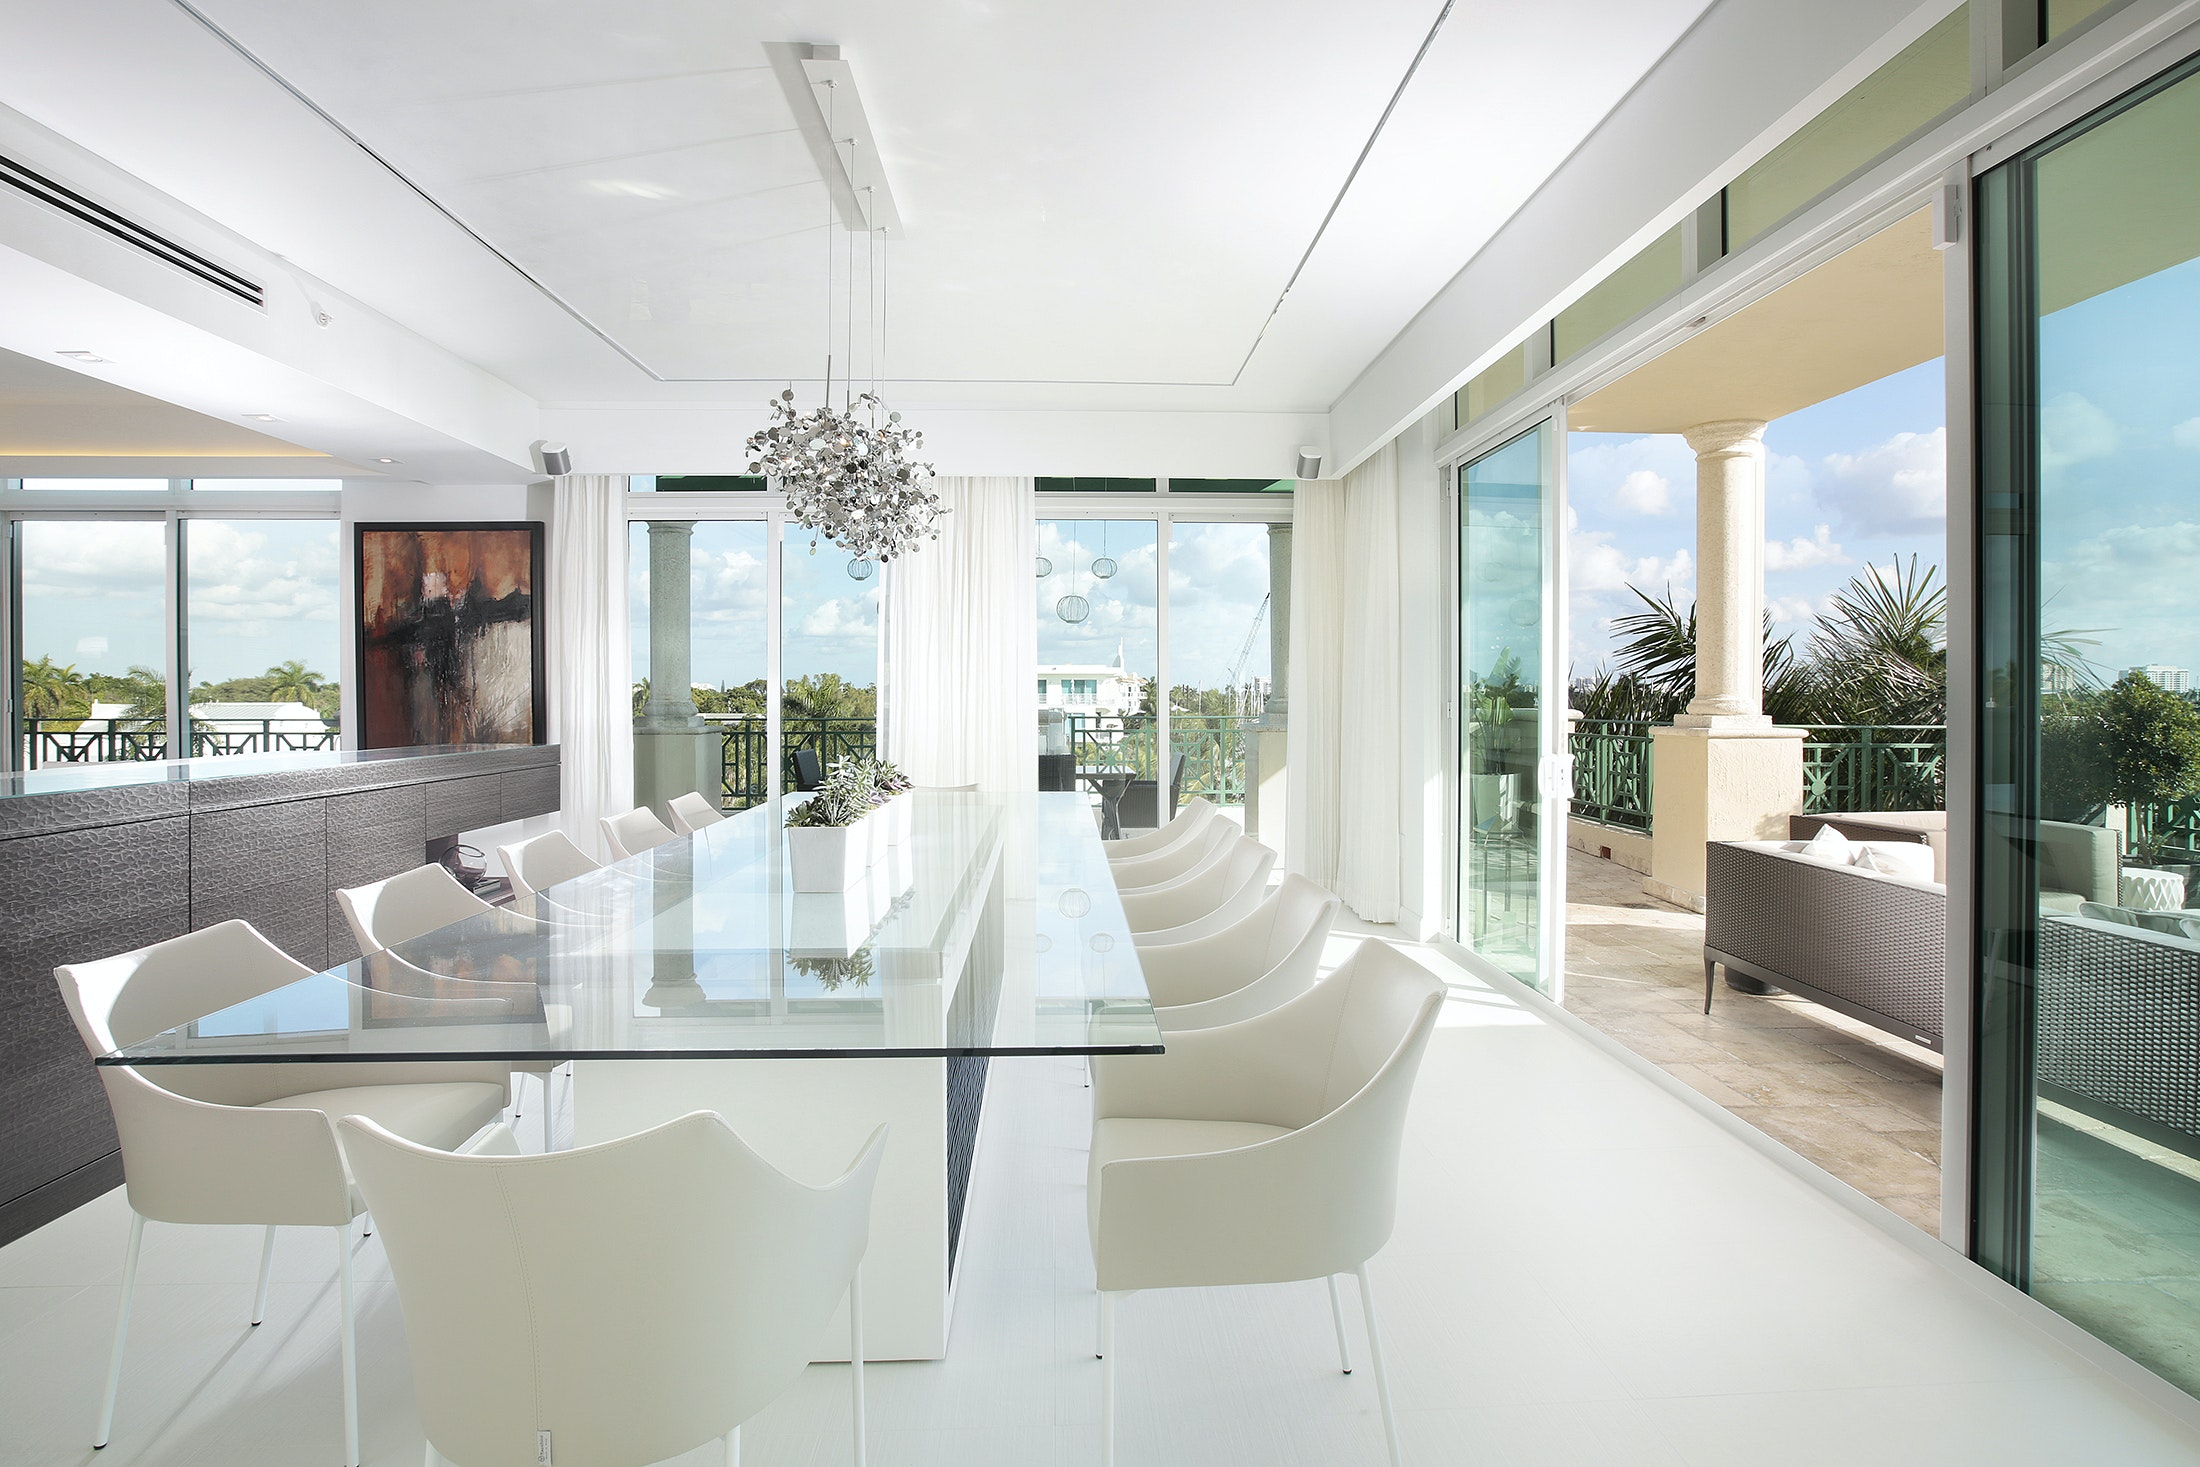 Good Dining Room   Residential Interior Design Project In Fort Lauderdale,  Florida By DKOR Interiors